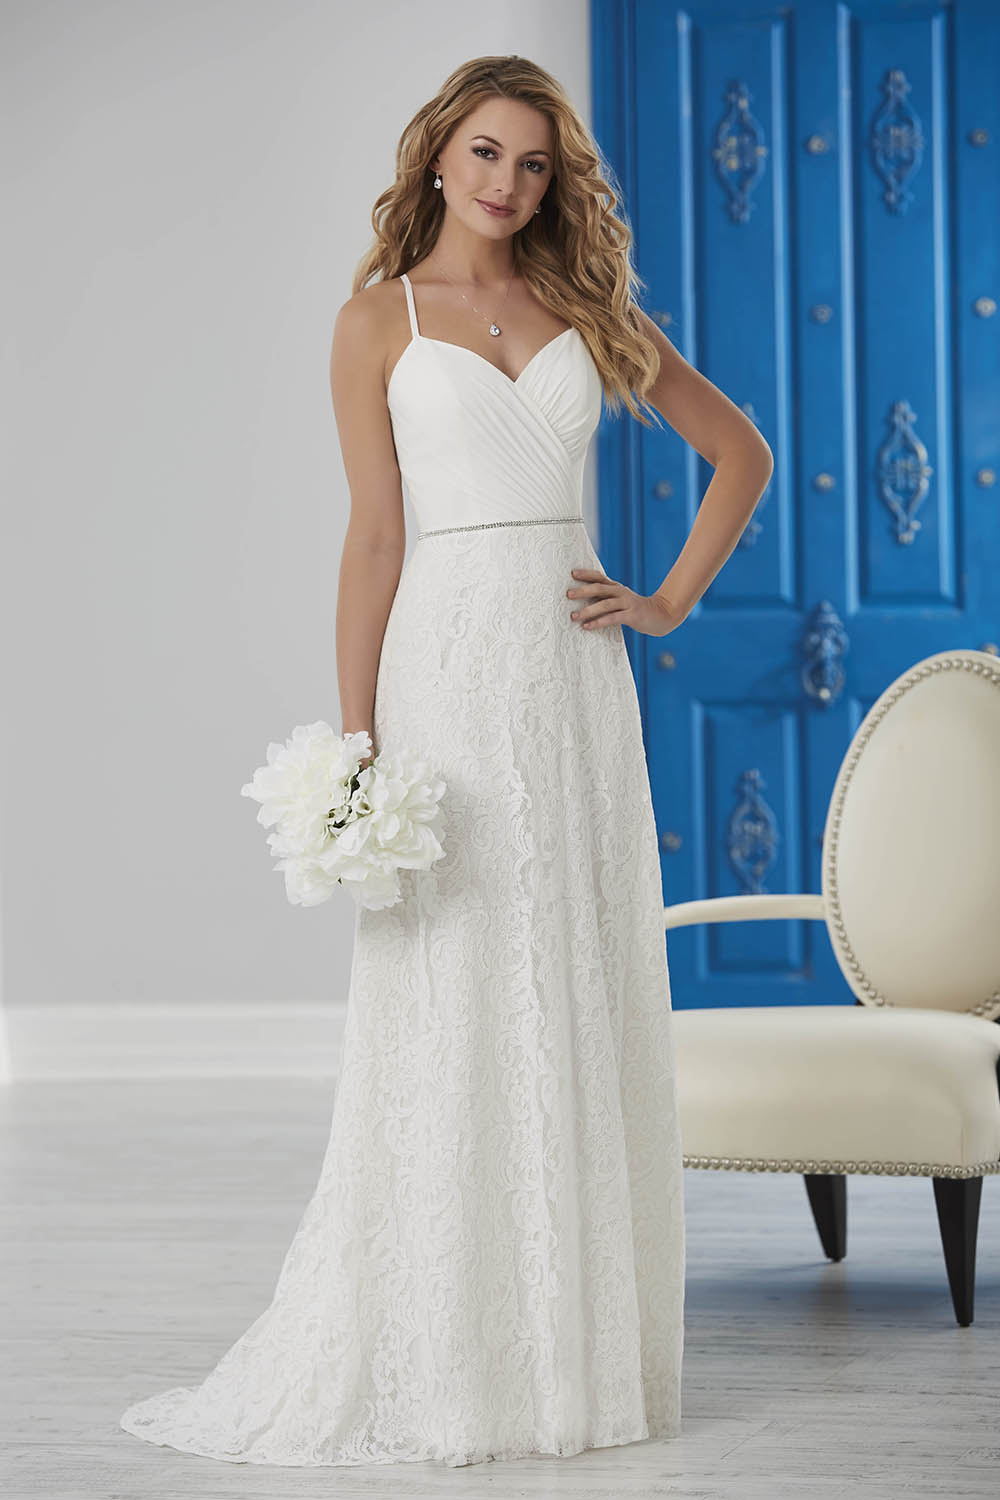 bridesmaid-dresses-jacquelin-bridals-canada-26209